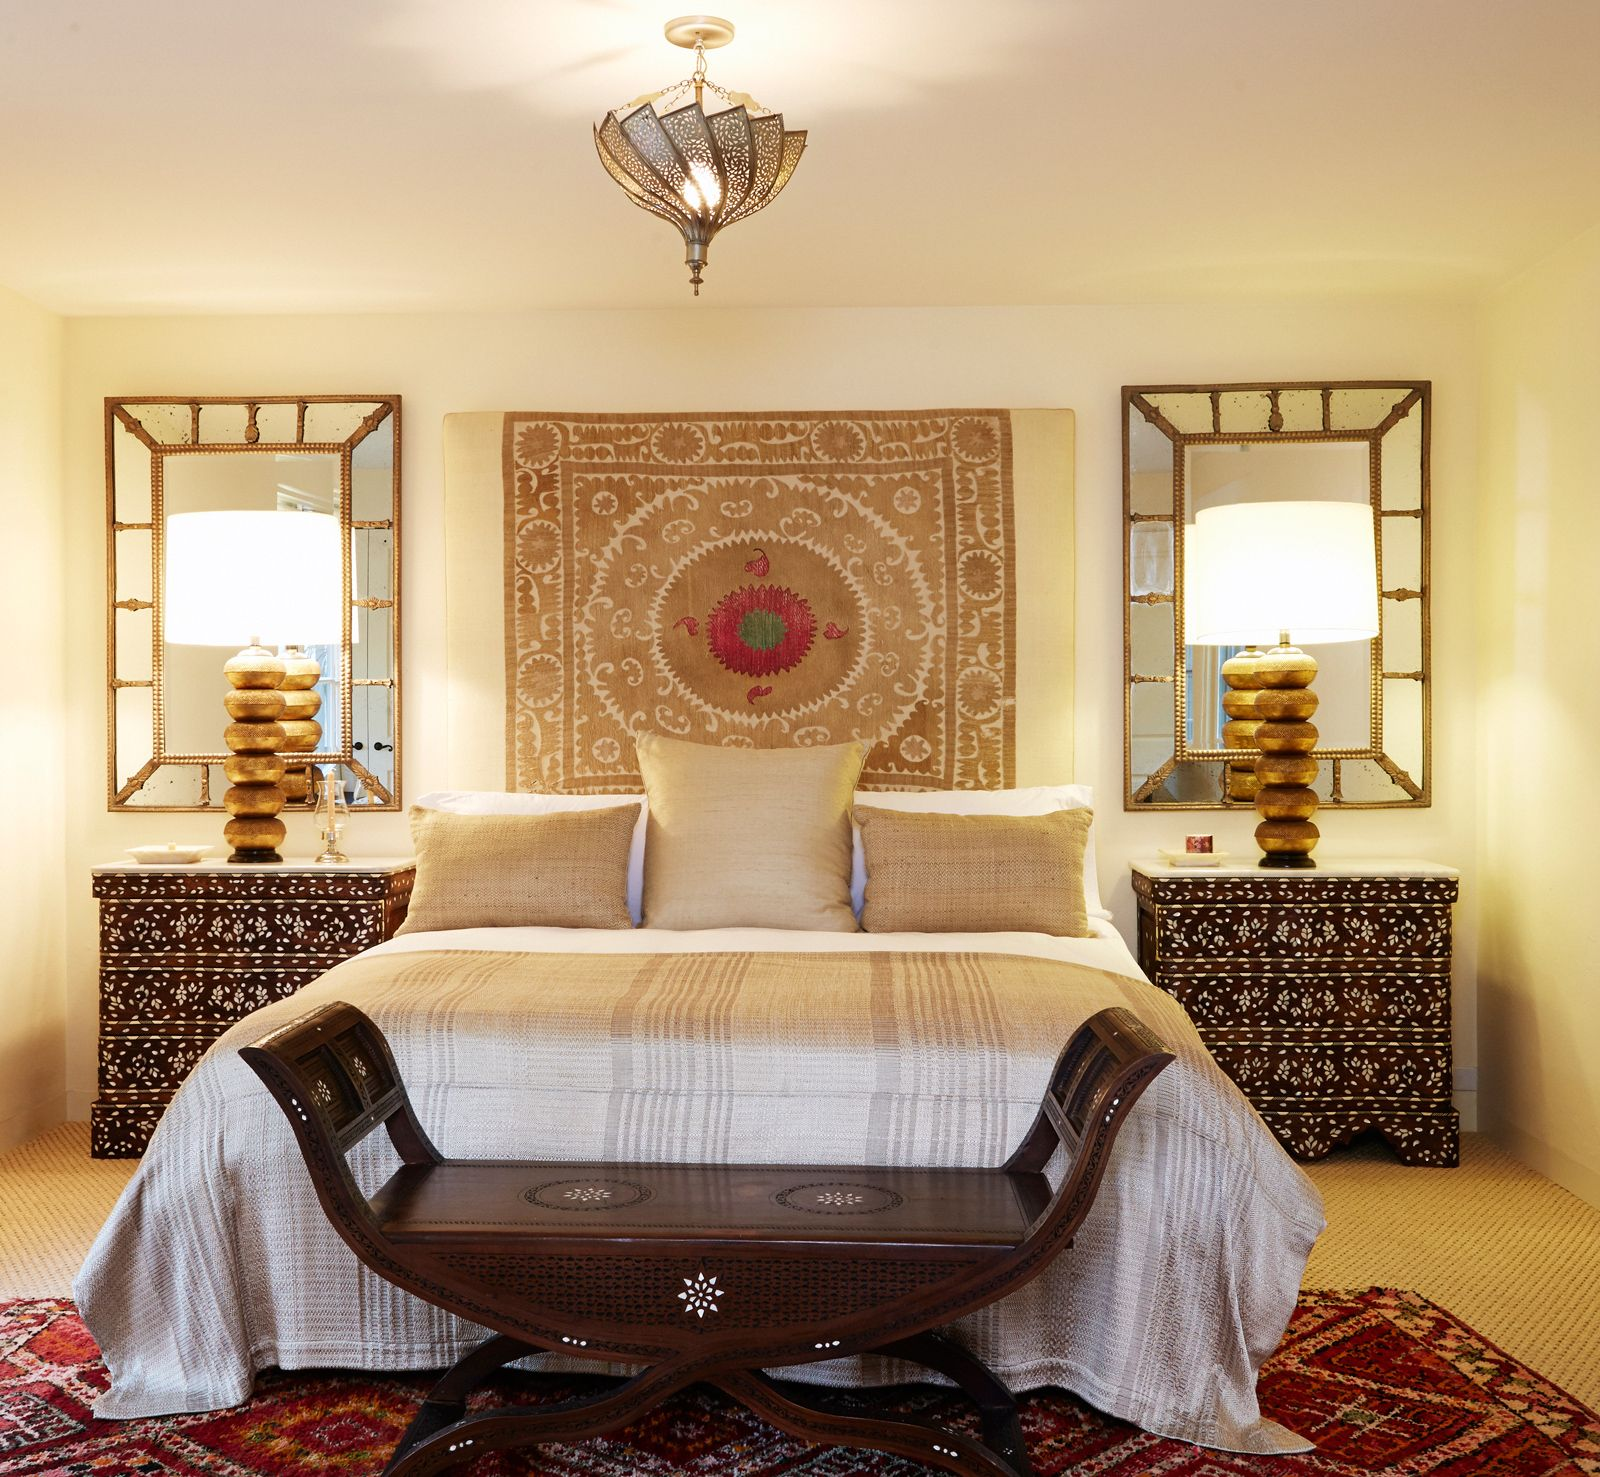 Modern global style in the bedroom